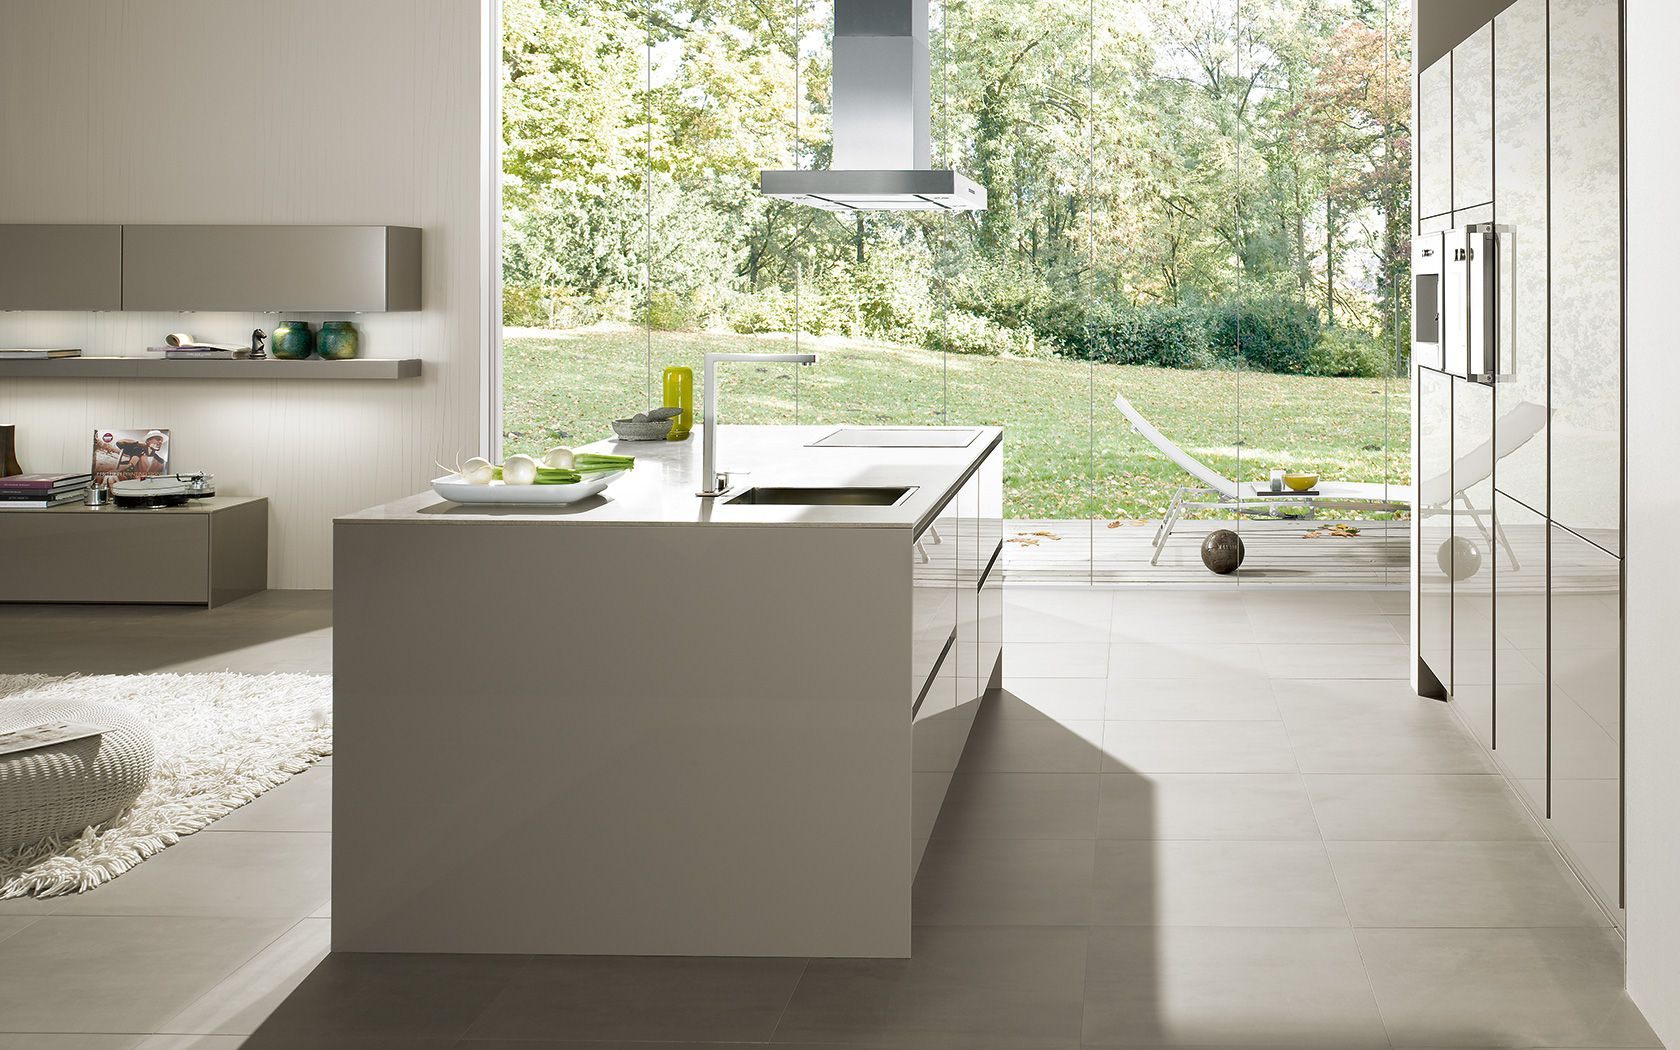 Modern kitchen without handles: s2 siematic.com zijkant keuken